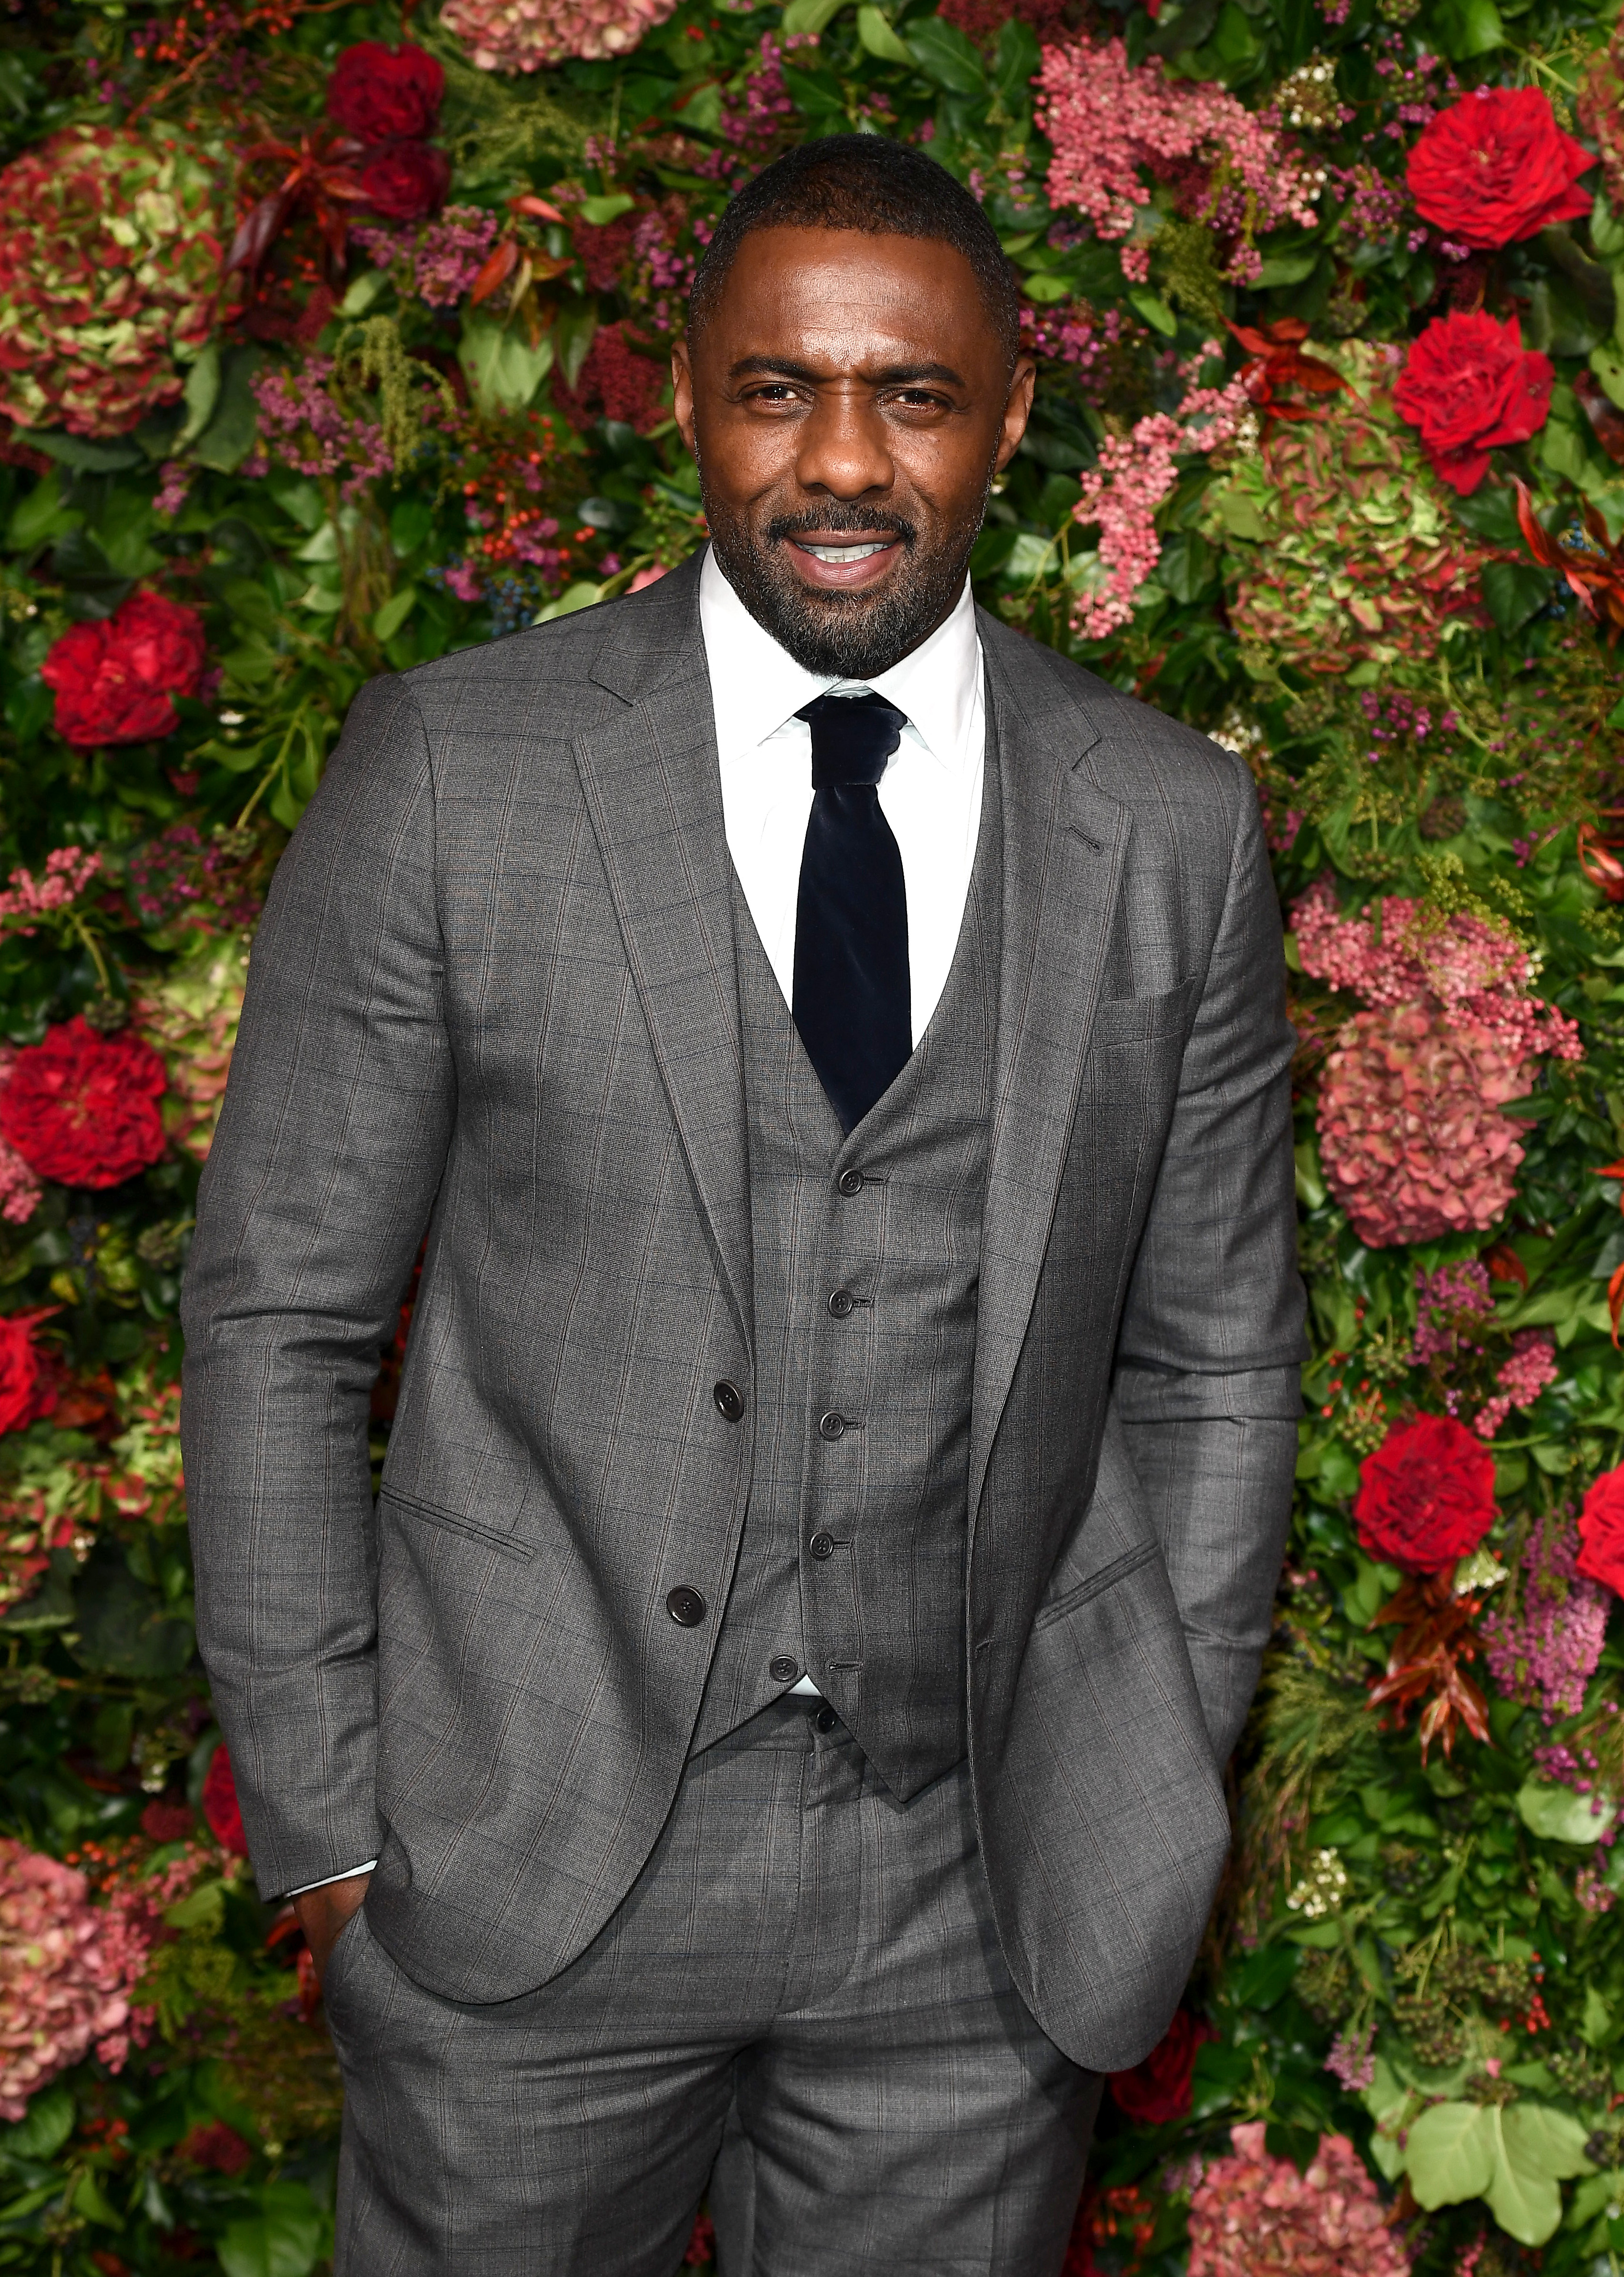 Idris Elba attends the Evening Standard Theatre Awards 2018 at the Theatre Royal on November 18, 2018 in London, England. (Getty Images)